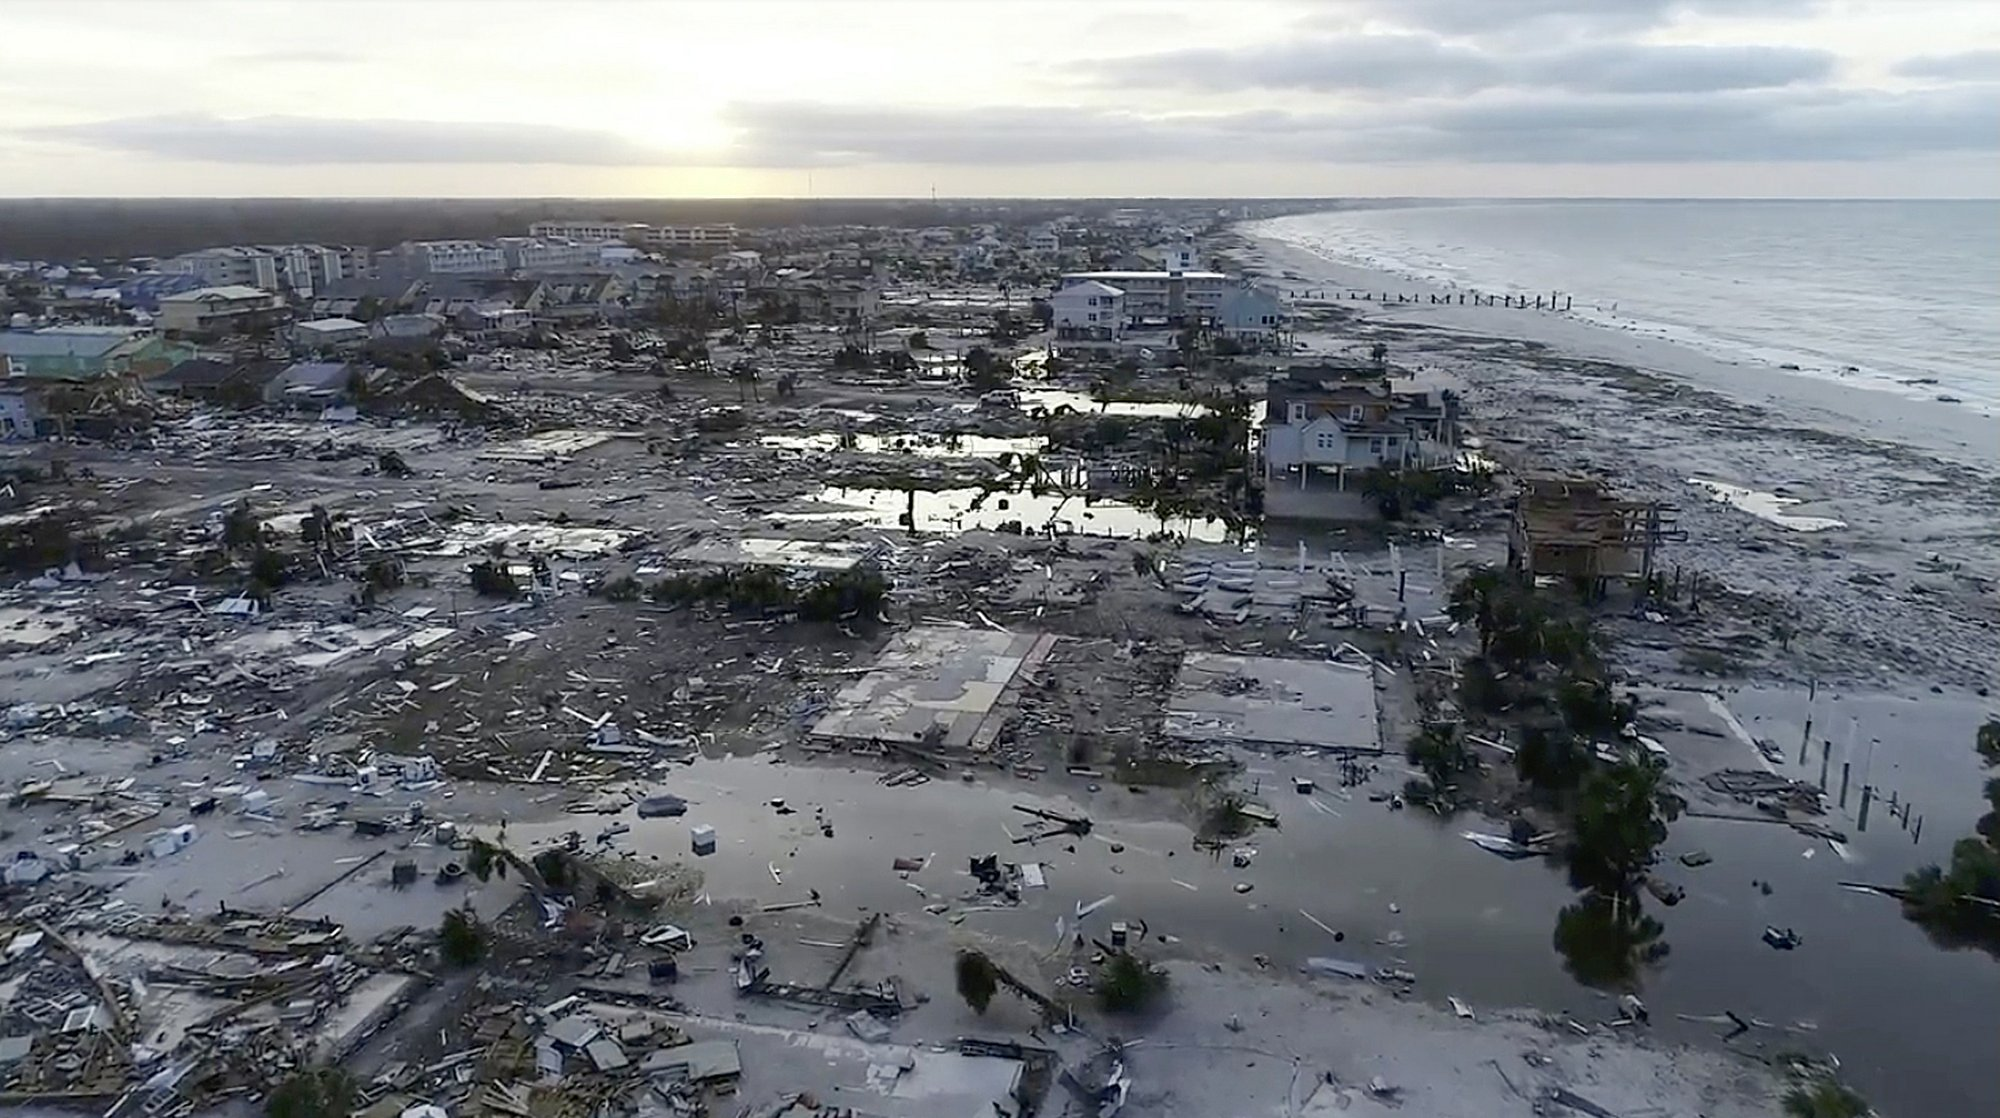 Death toll rises to 6 in wake of Hurricane Michael's rampage